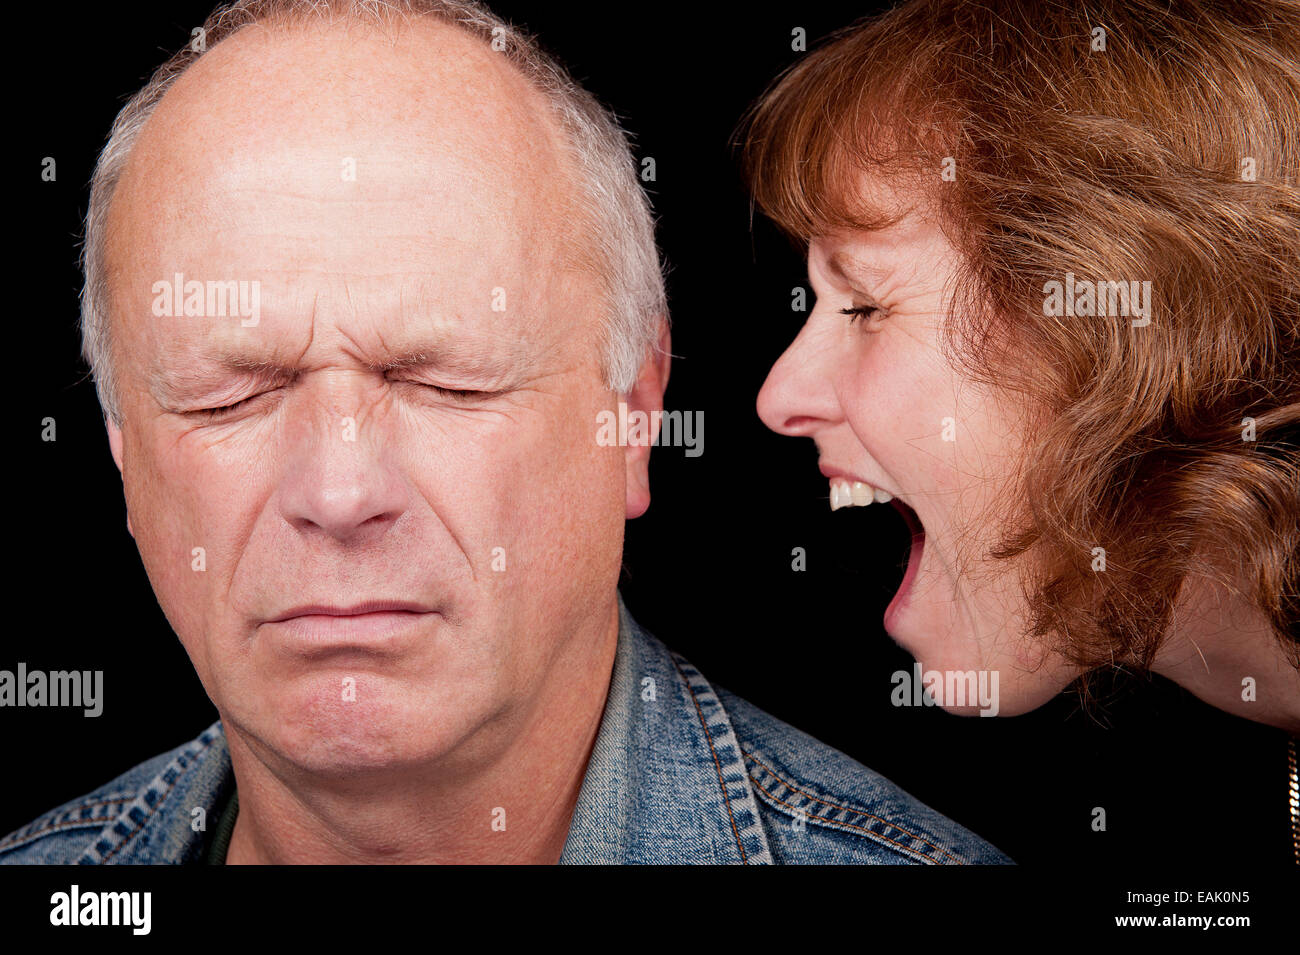 Middle aged couple having an argument, with the woman shouting at the man while he is crying. - Stock Image